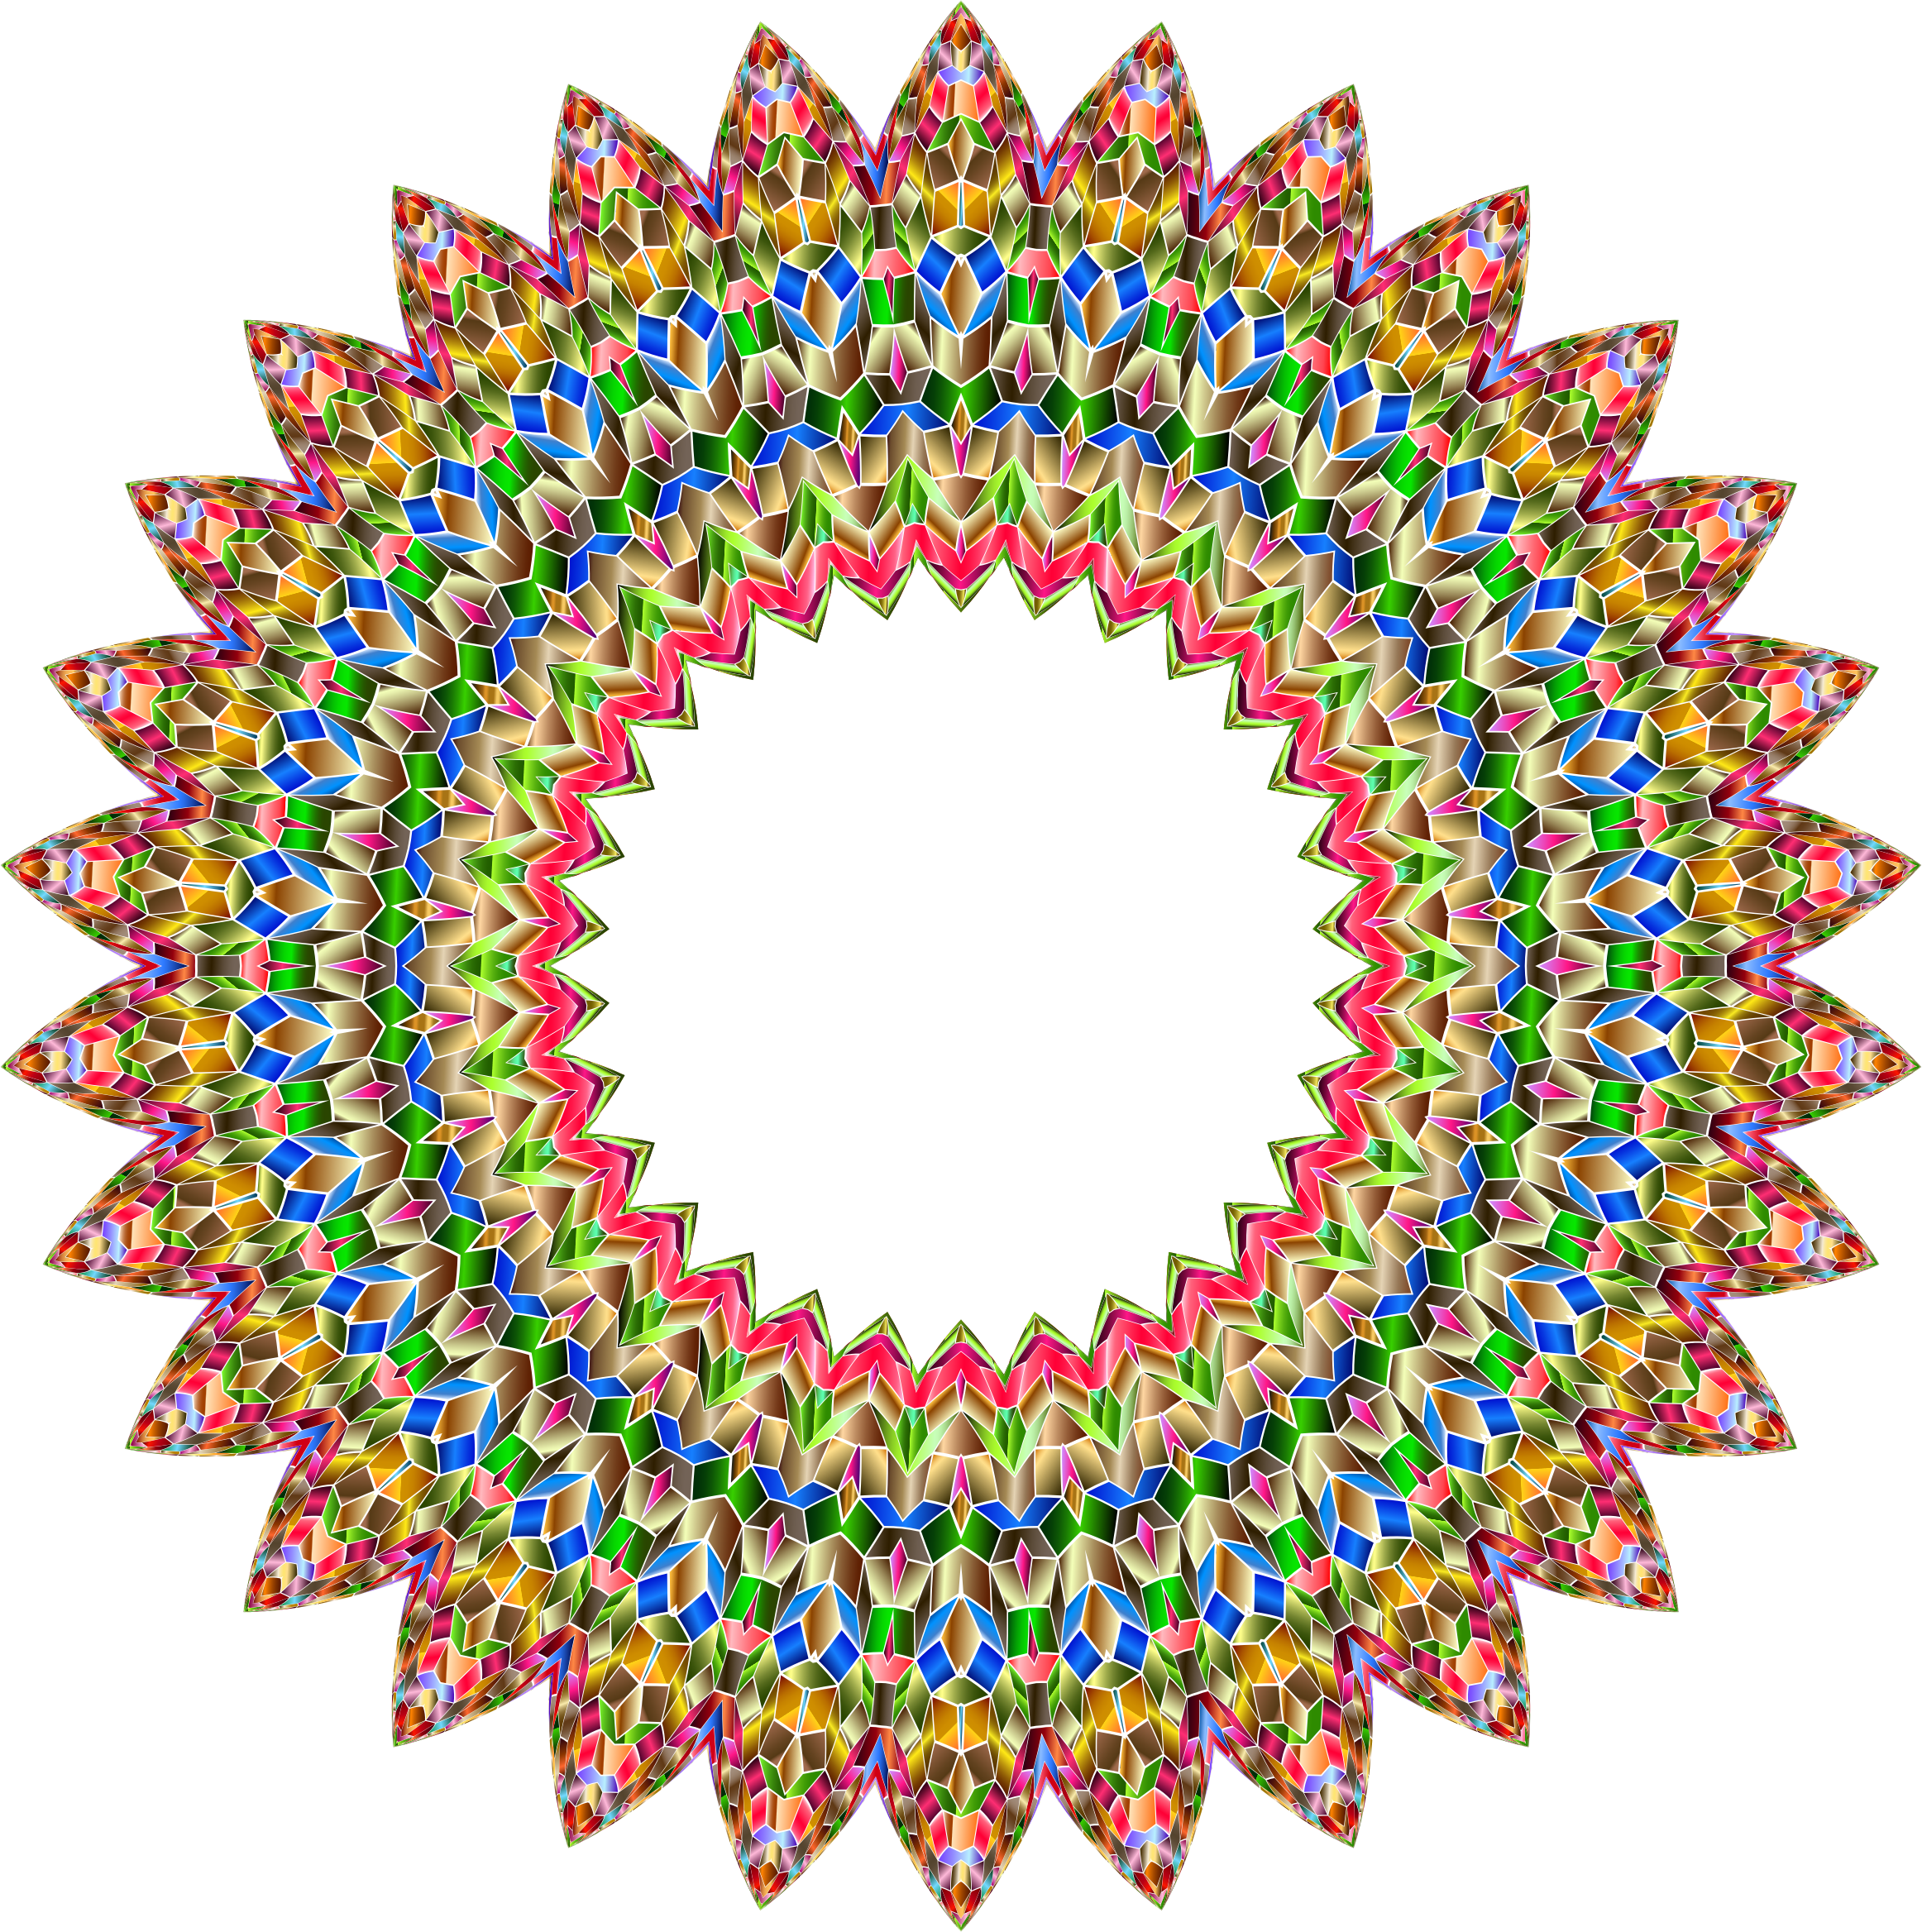 Chromatic Iridescent Mandala 2 by GDJ